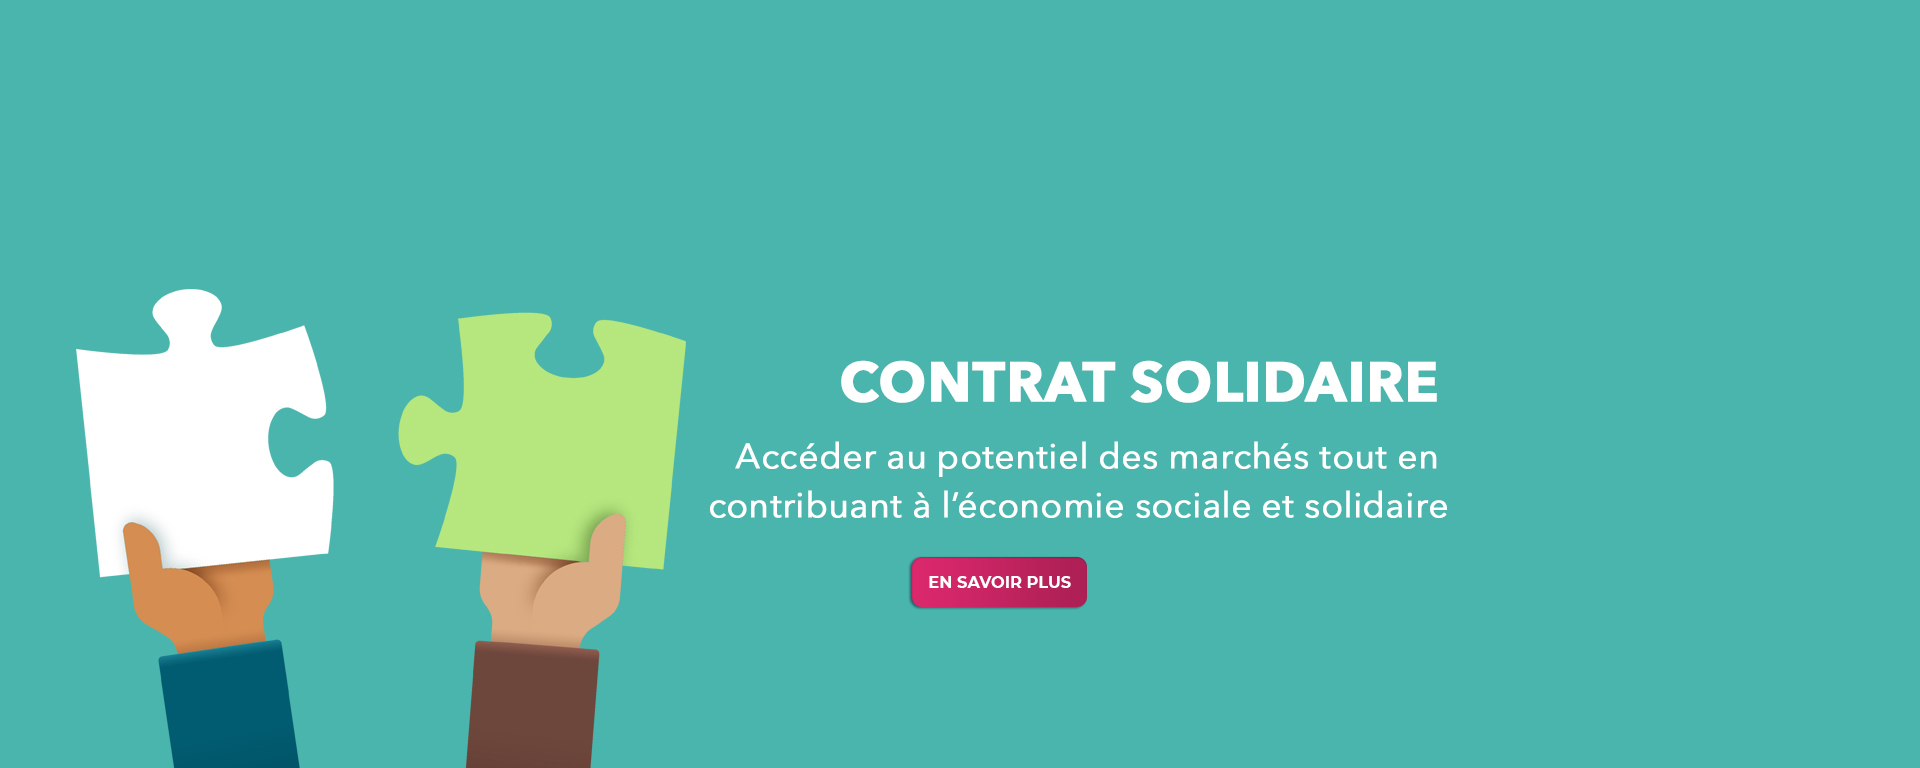 201808_Contrat_Solidaire